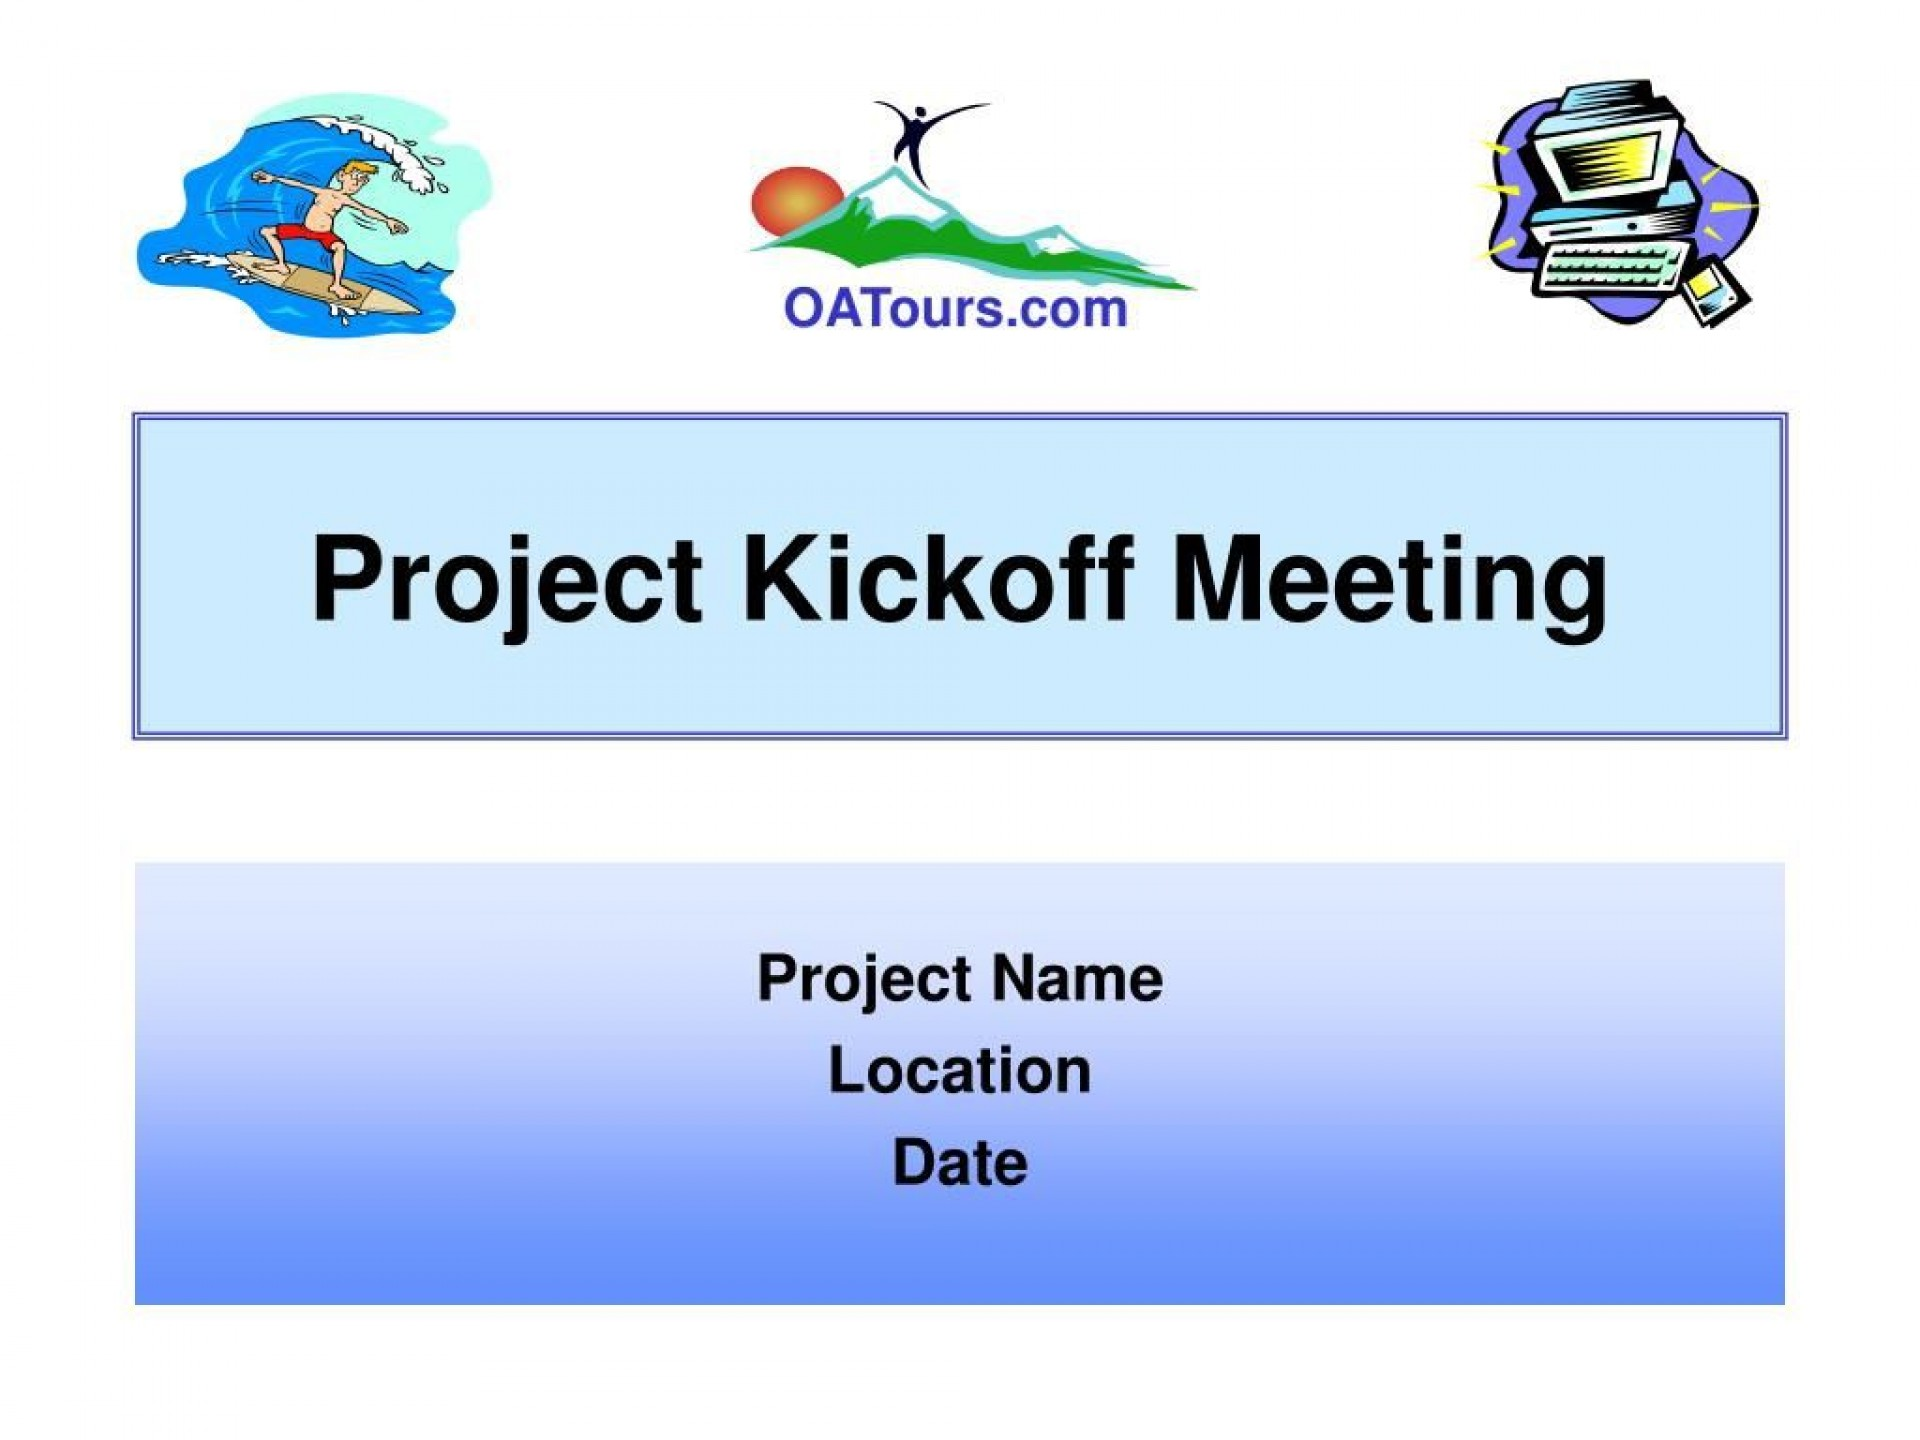 010 Impressive Project Kick Off Template Ppt Highest Quality  Meeting Management Kickoff1920